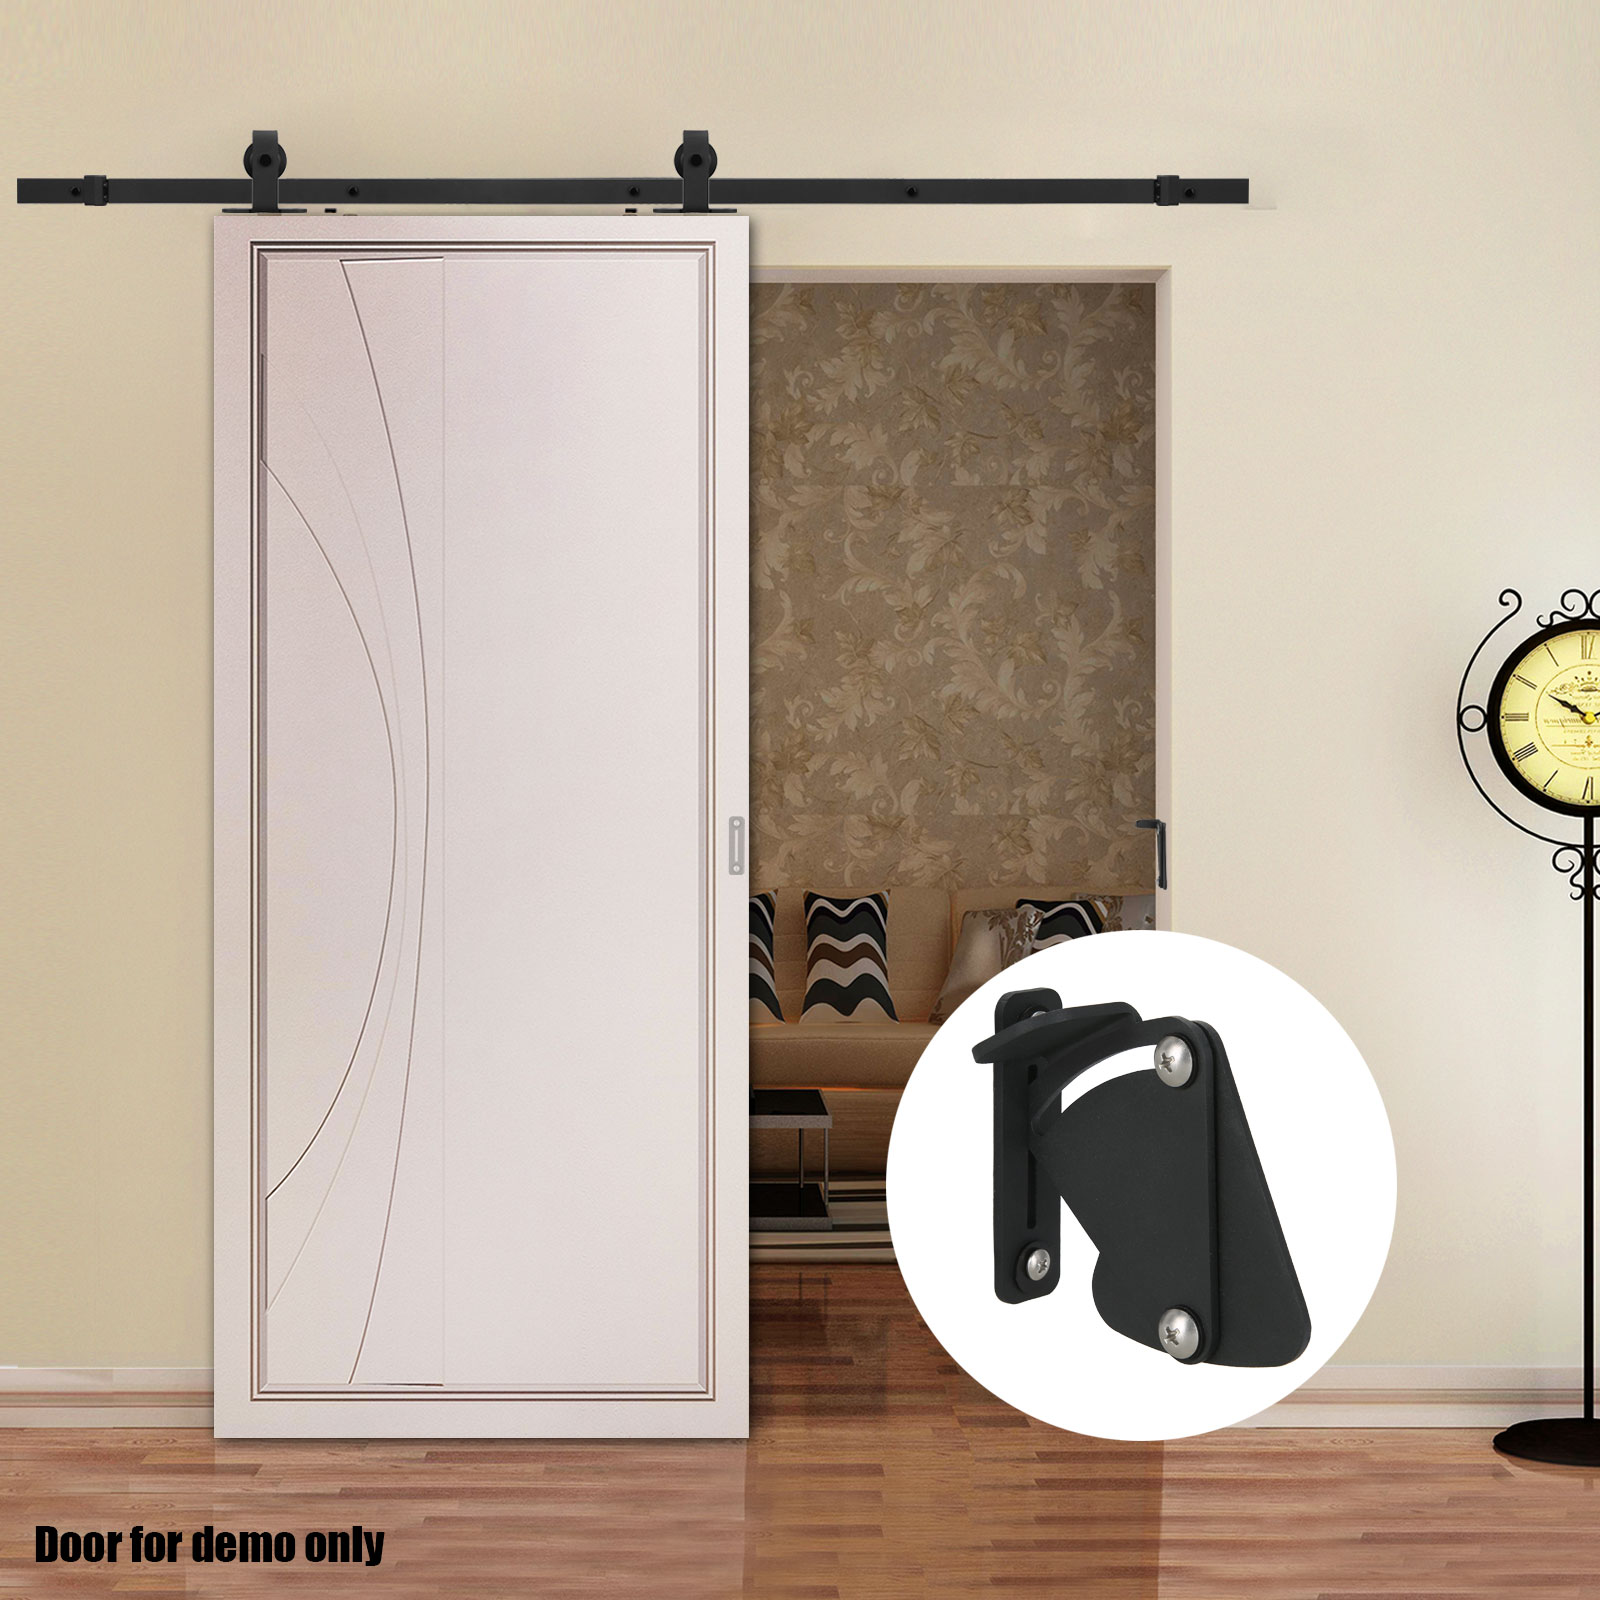 Elegant Office Barn Doors. 2m 4m Sliding Barn Door Hardware Track Set Home Office  Interior Closet